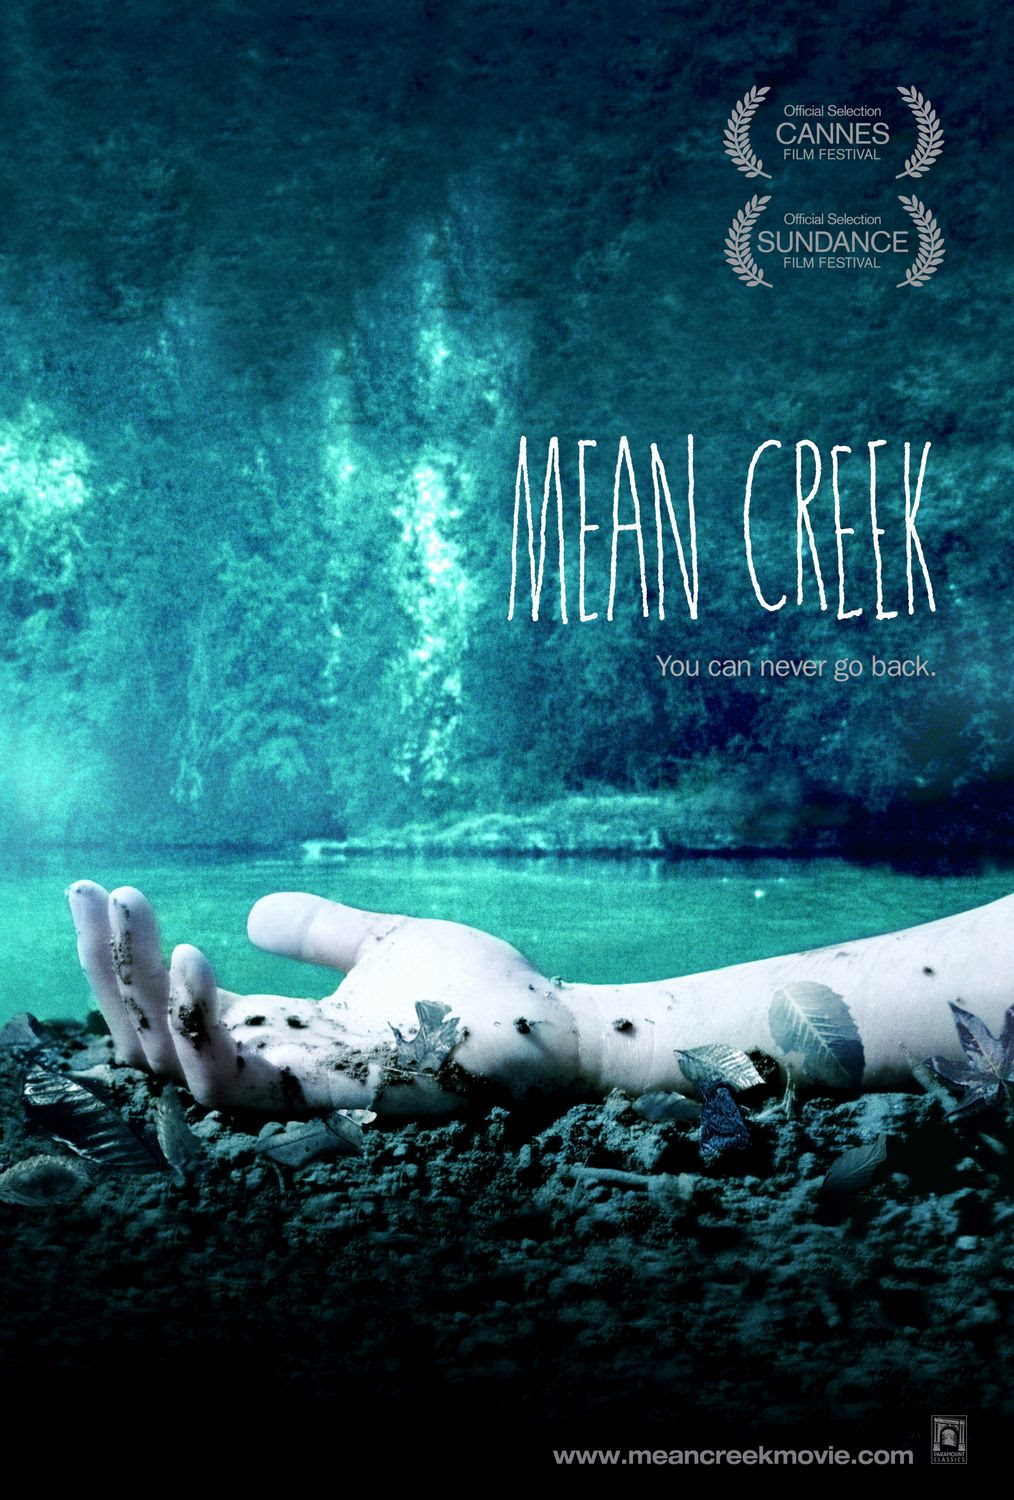 Risultati immagini per mean creek movie poster